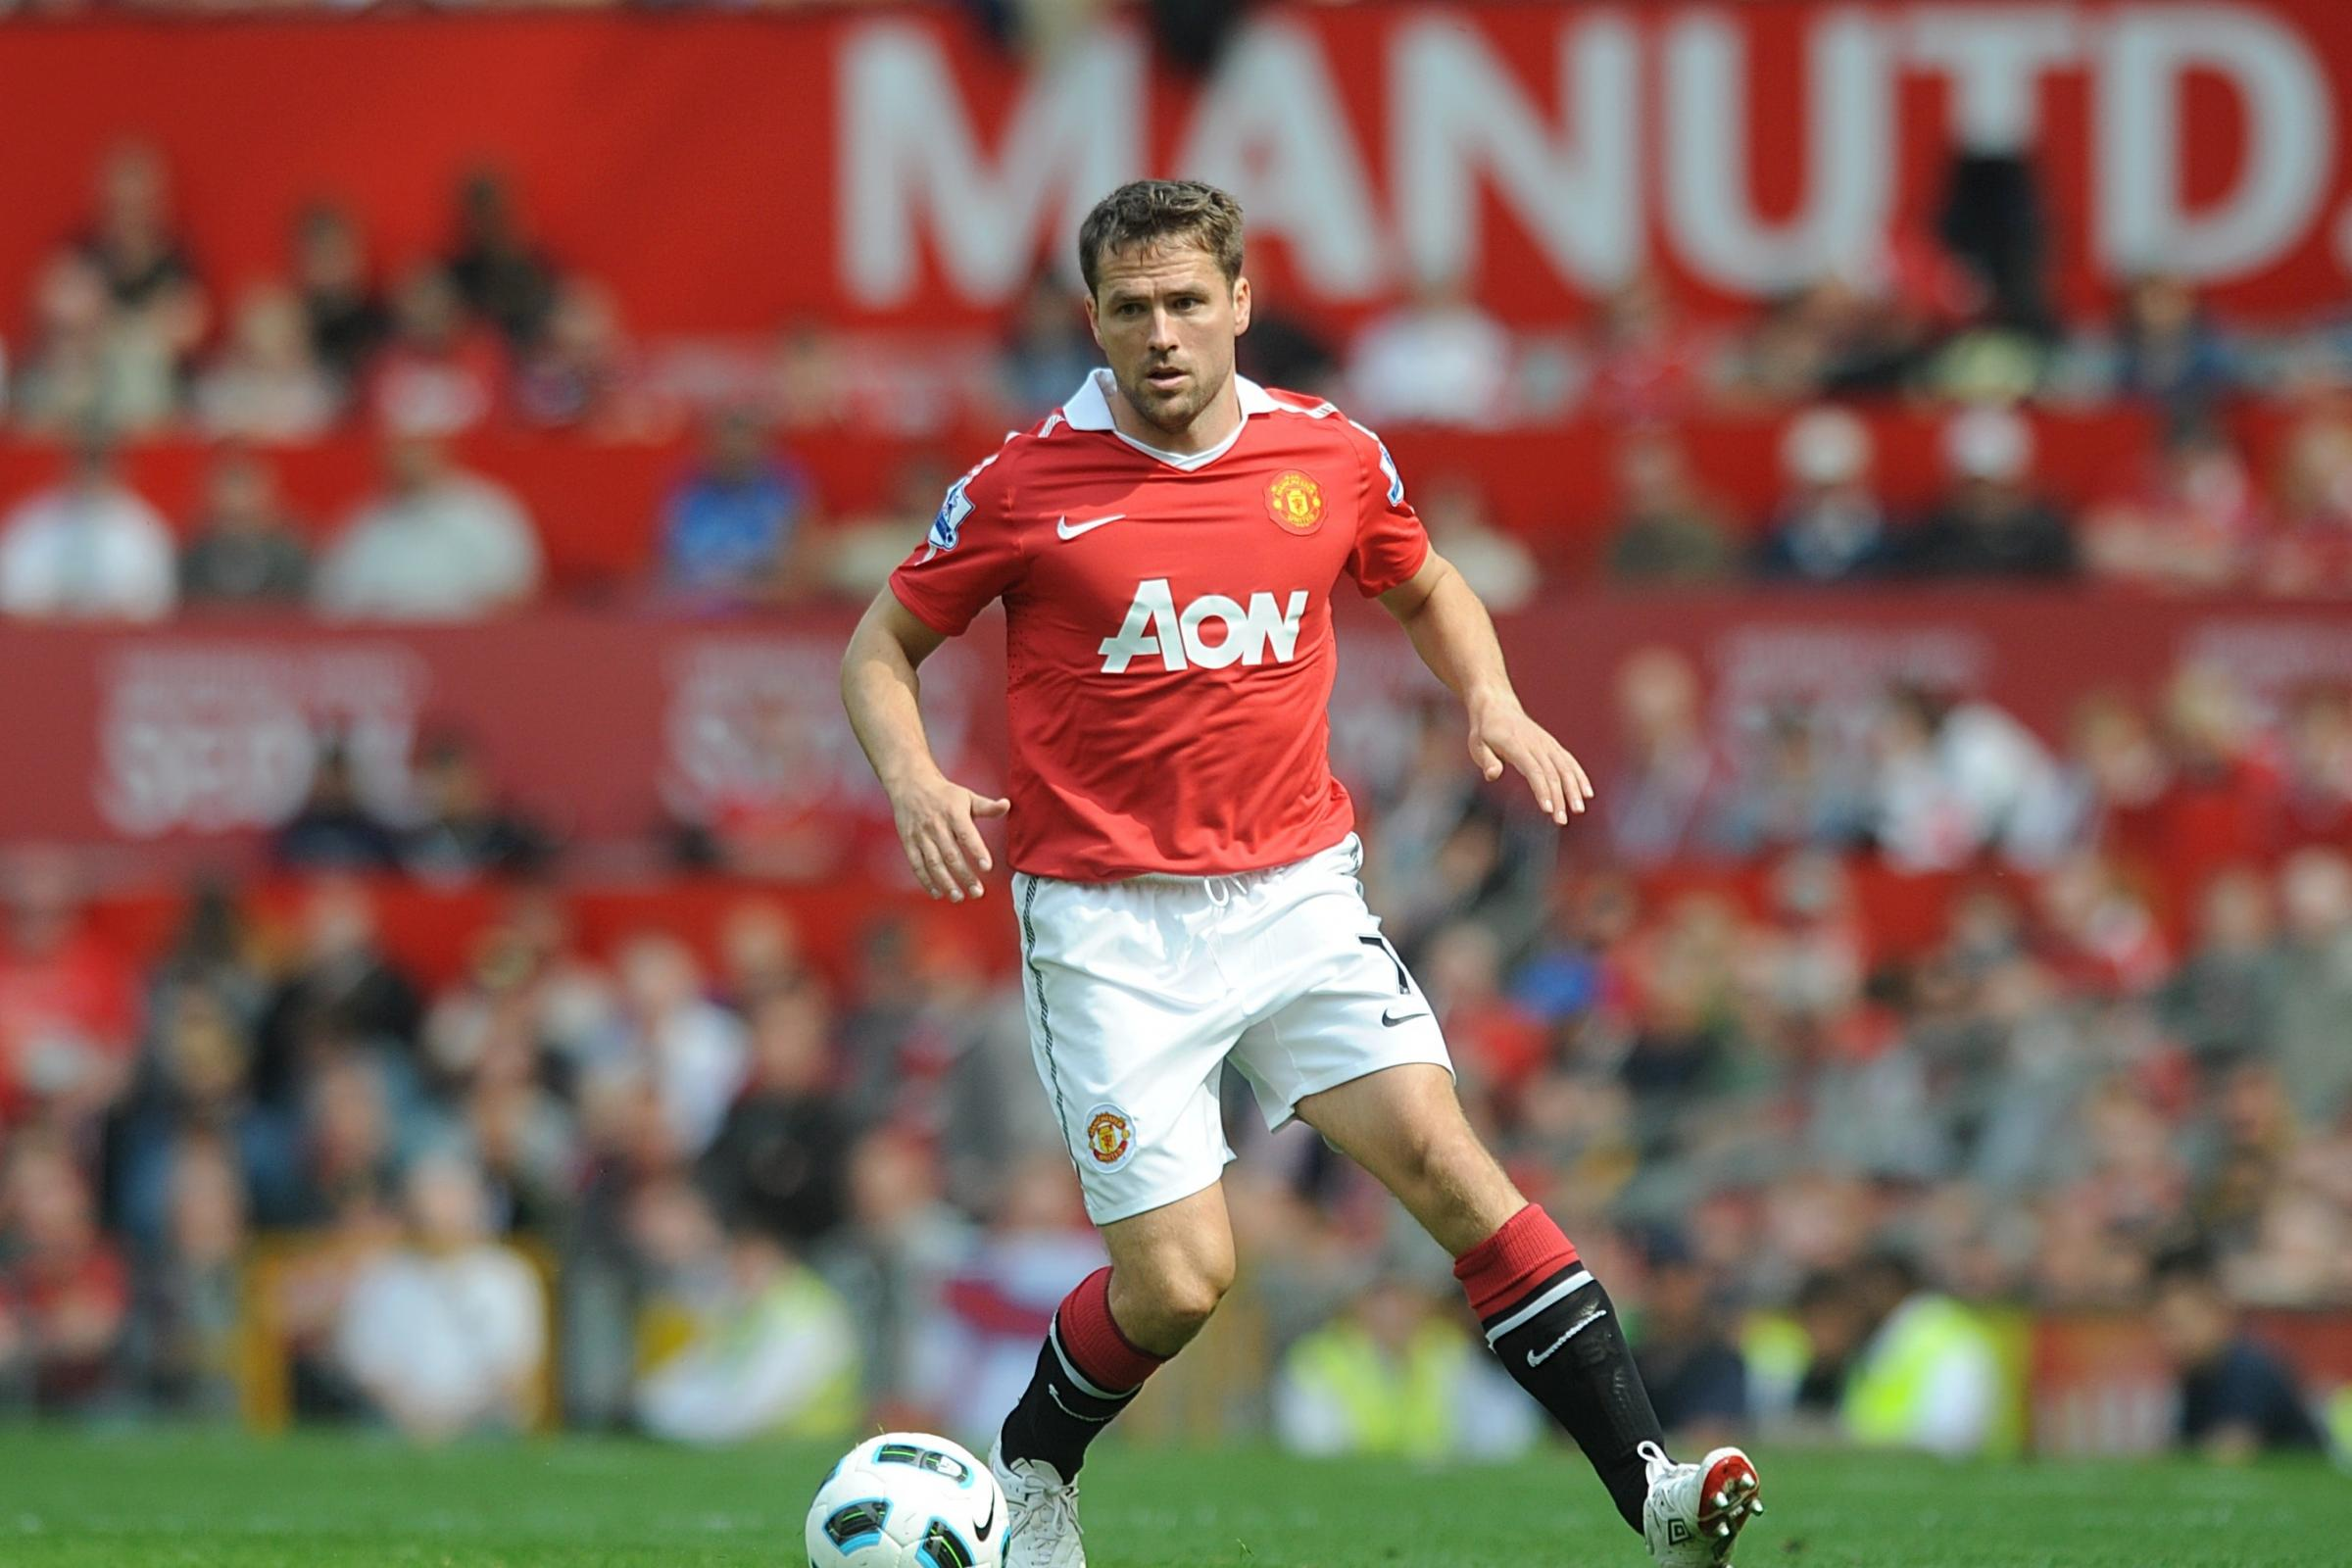 Michael Owen was the last player to turn out for both Liverpool and Manchester United